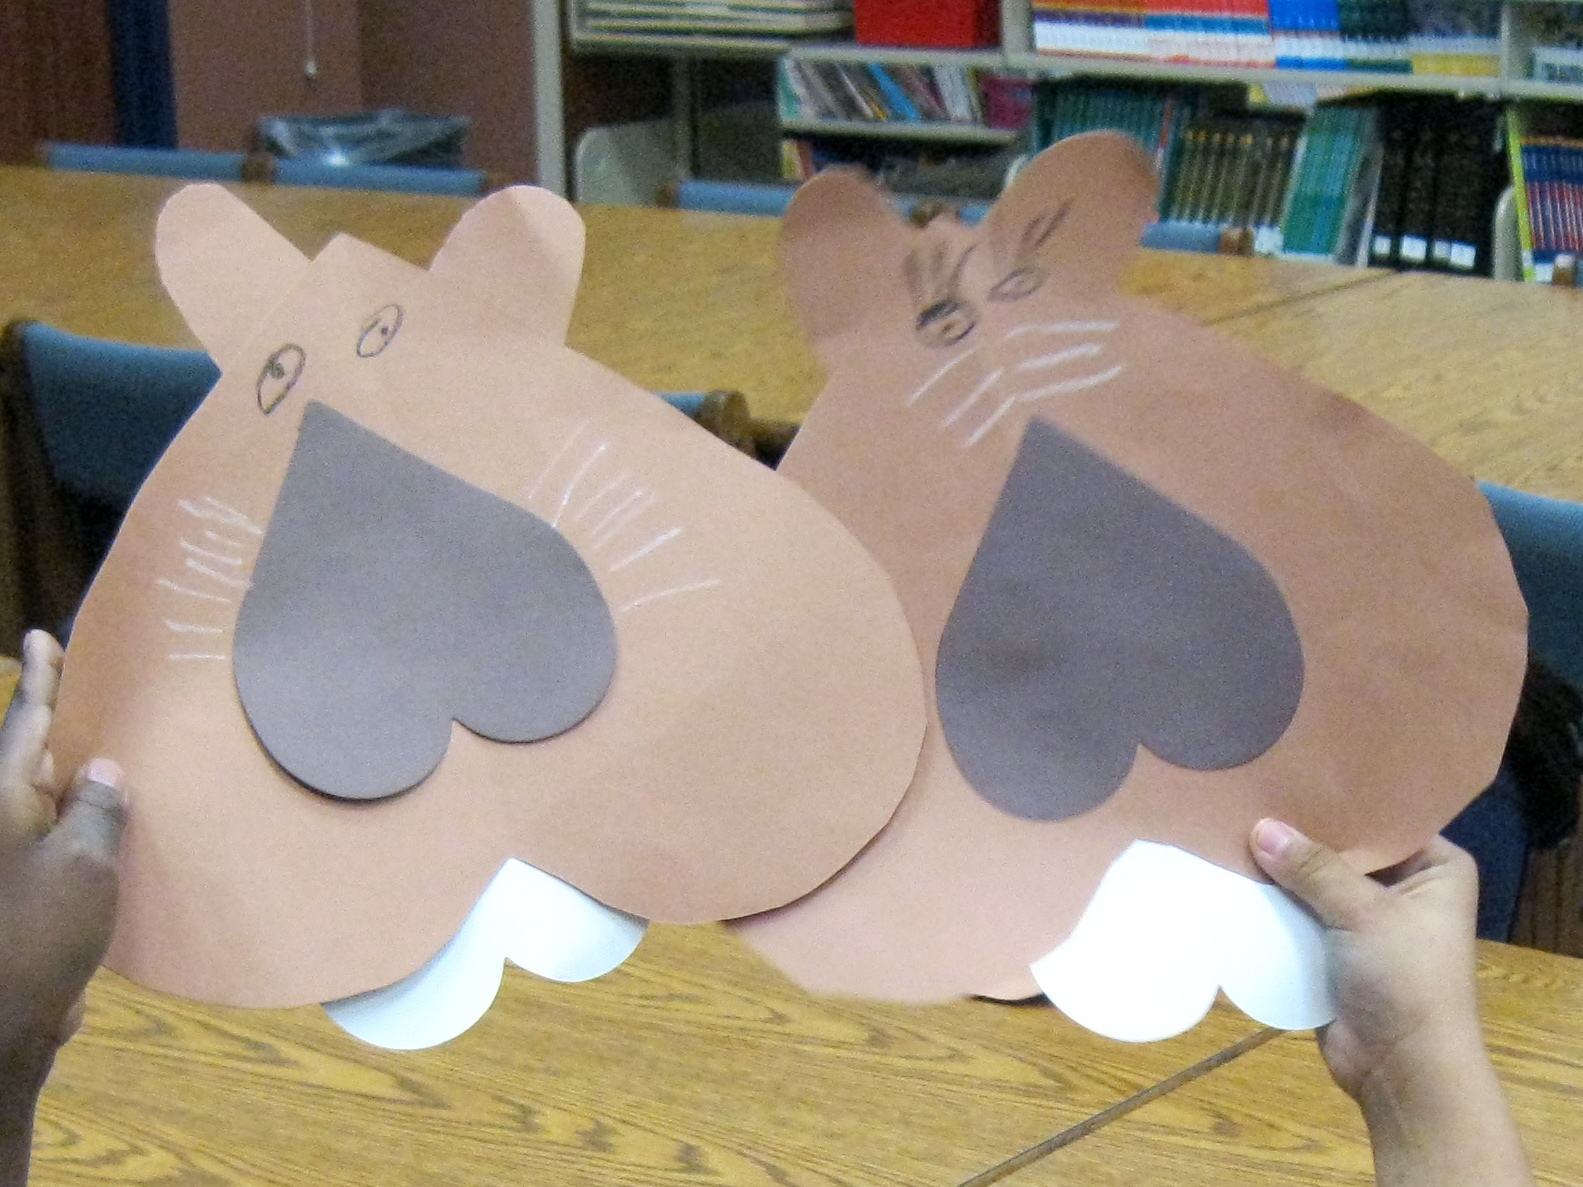 Librarianism Chronicles: Valentine Critter Crafts: Heart ...